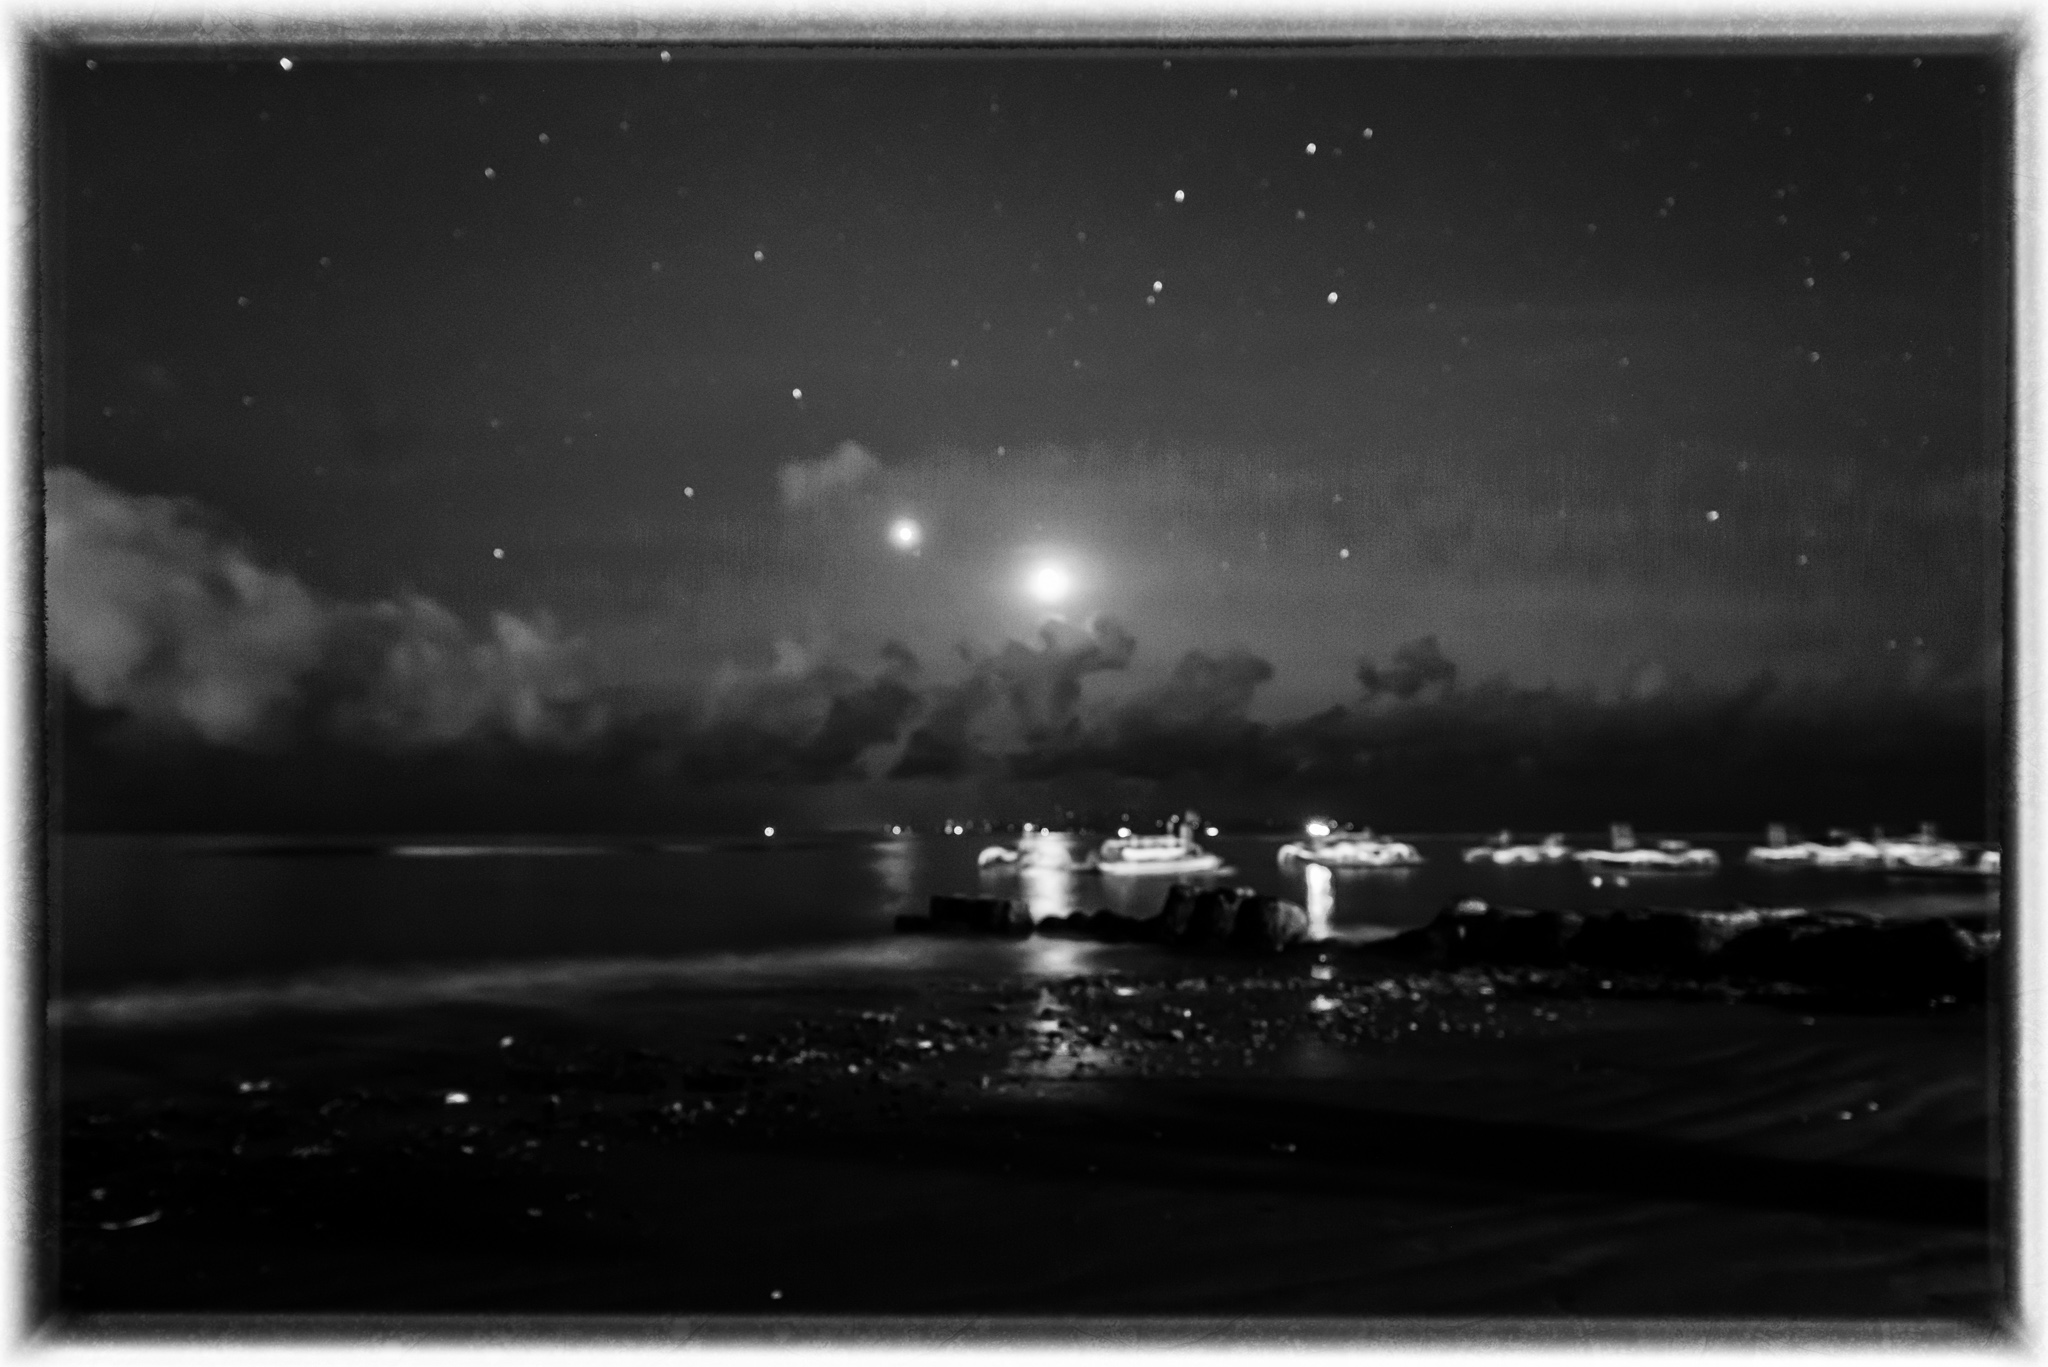 Moon, Stars and Boats